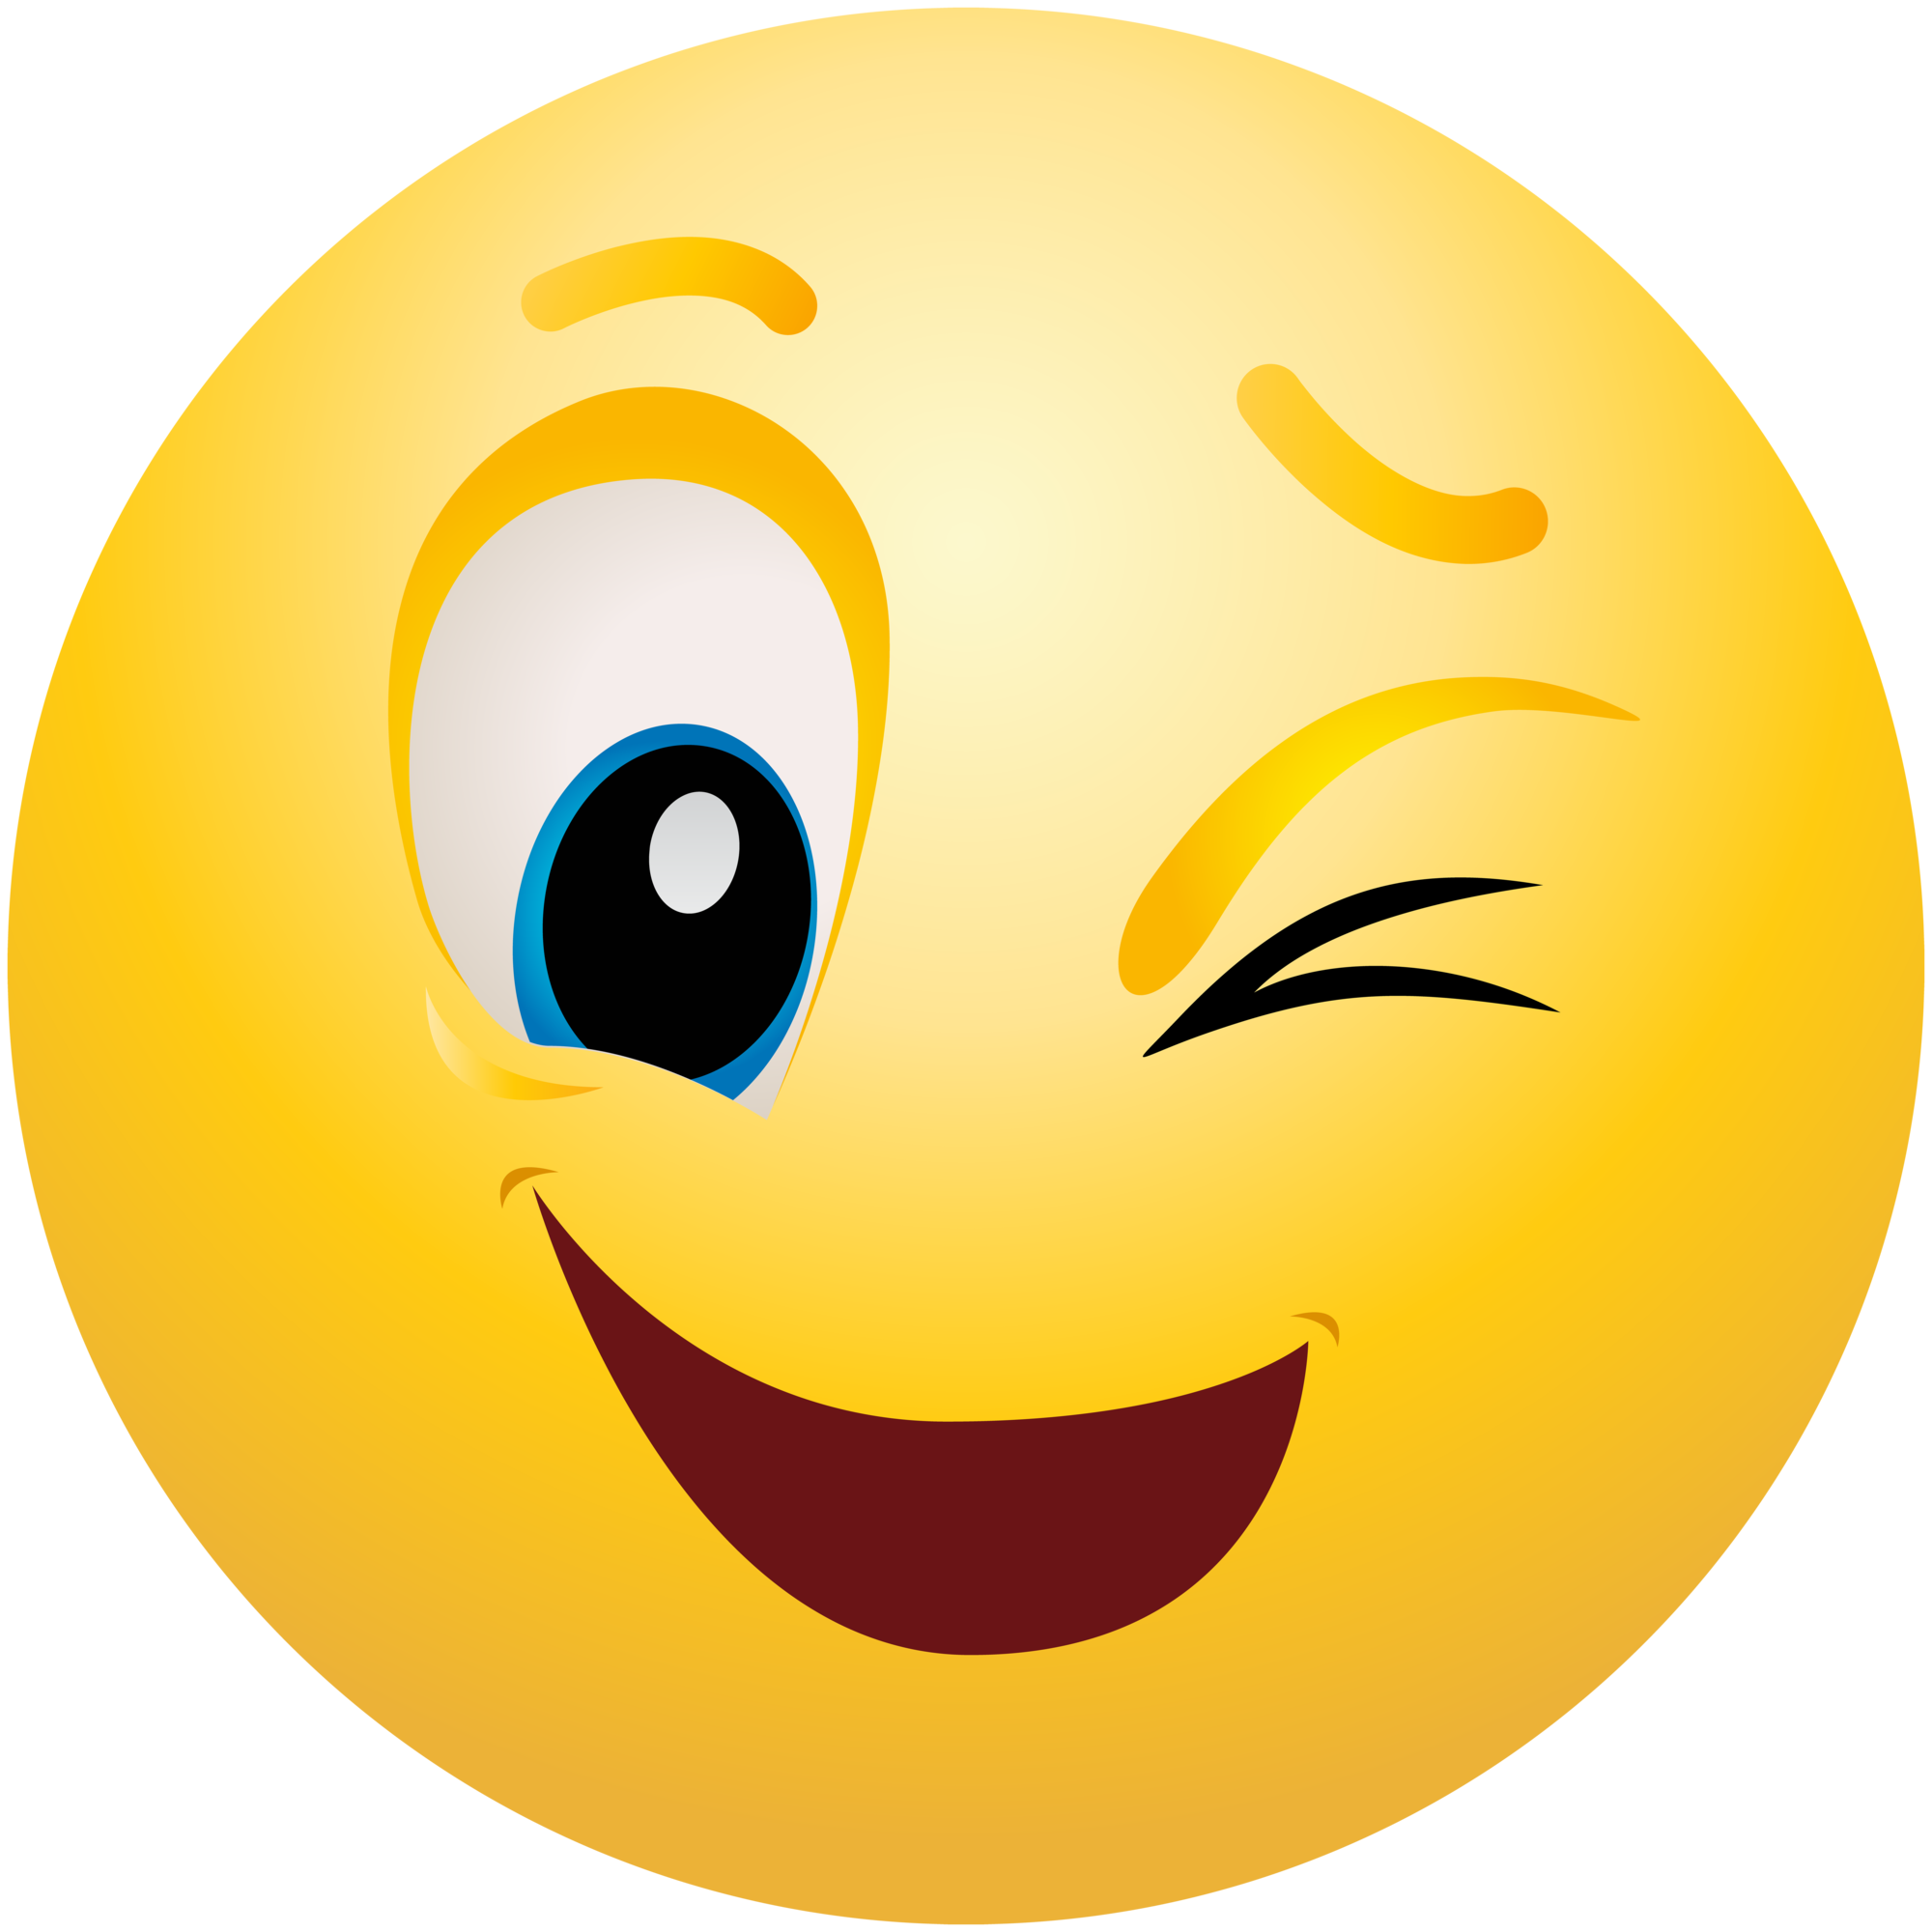 Emoji images clipart clip library library Winking Emoticon Emoji Clipart Info clip library library